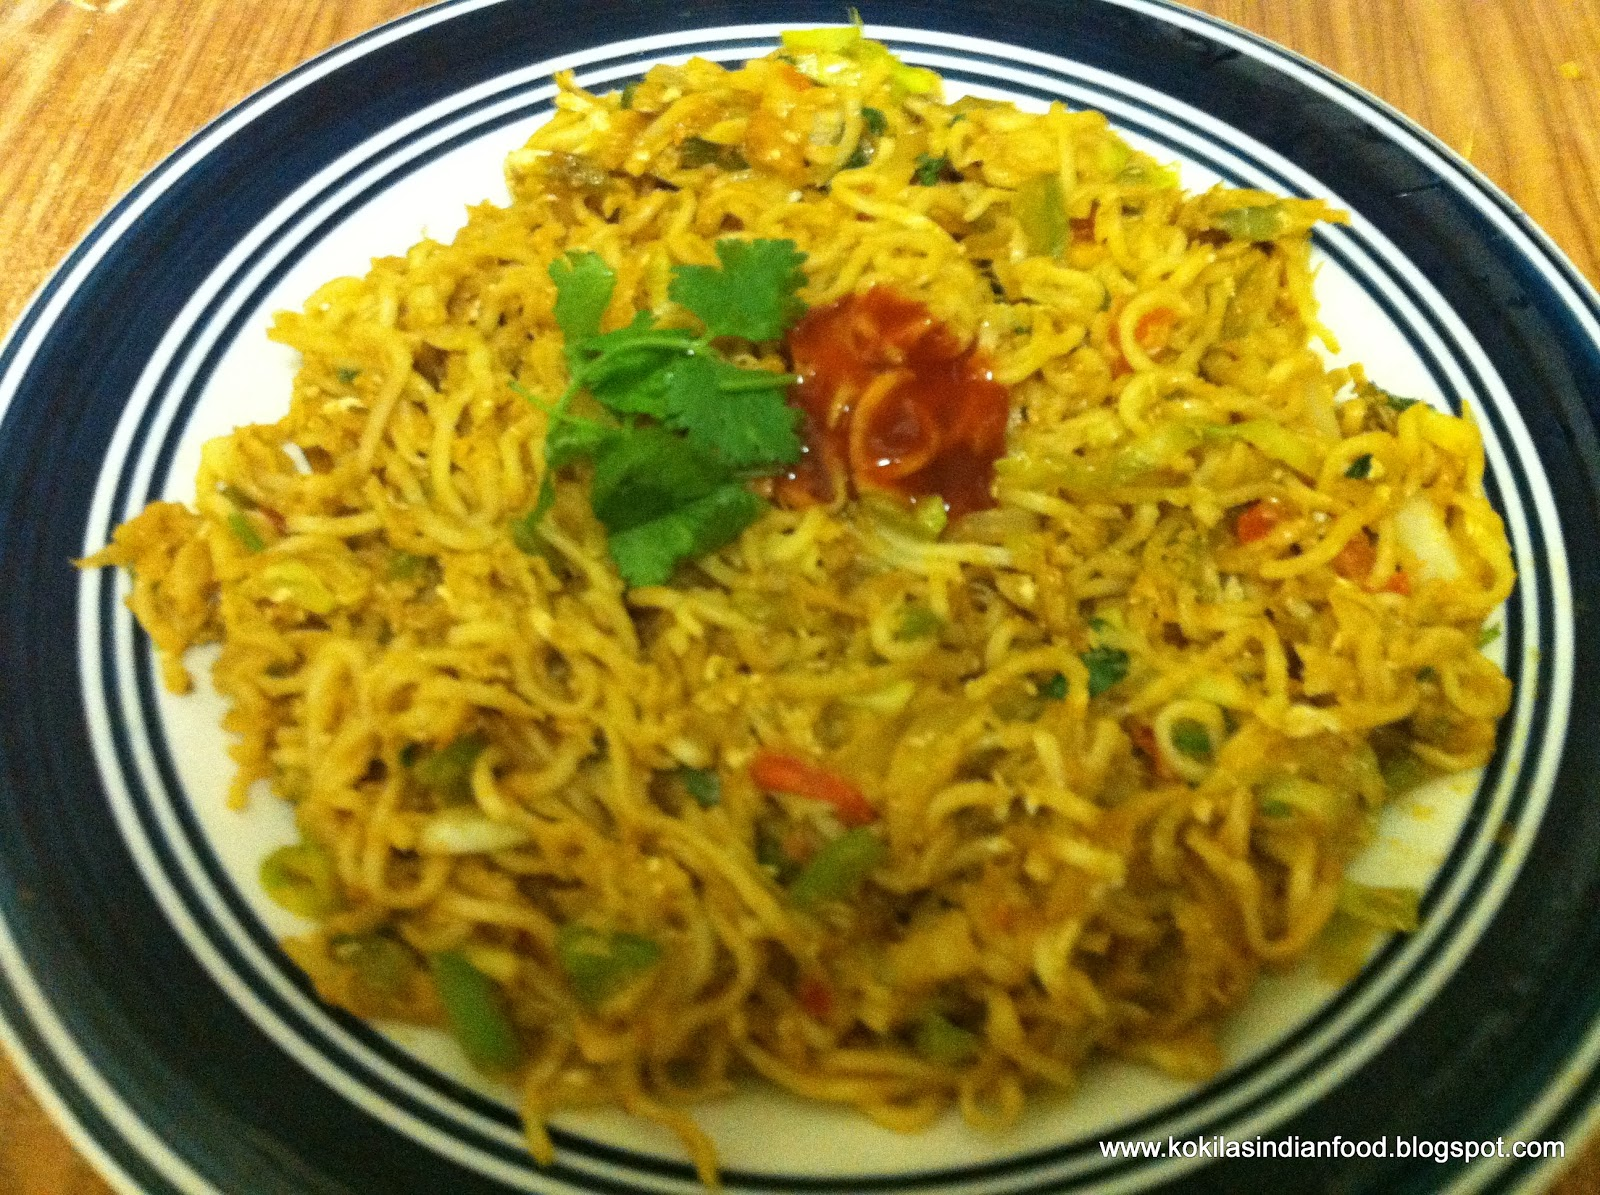 Noodles Masala Powder http://kokilasindianfood.blogspot.com/2011/10/spicy-maggi-noodles-ingredients-maggi.html